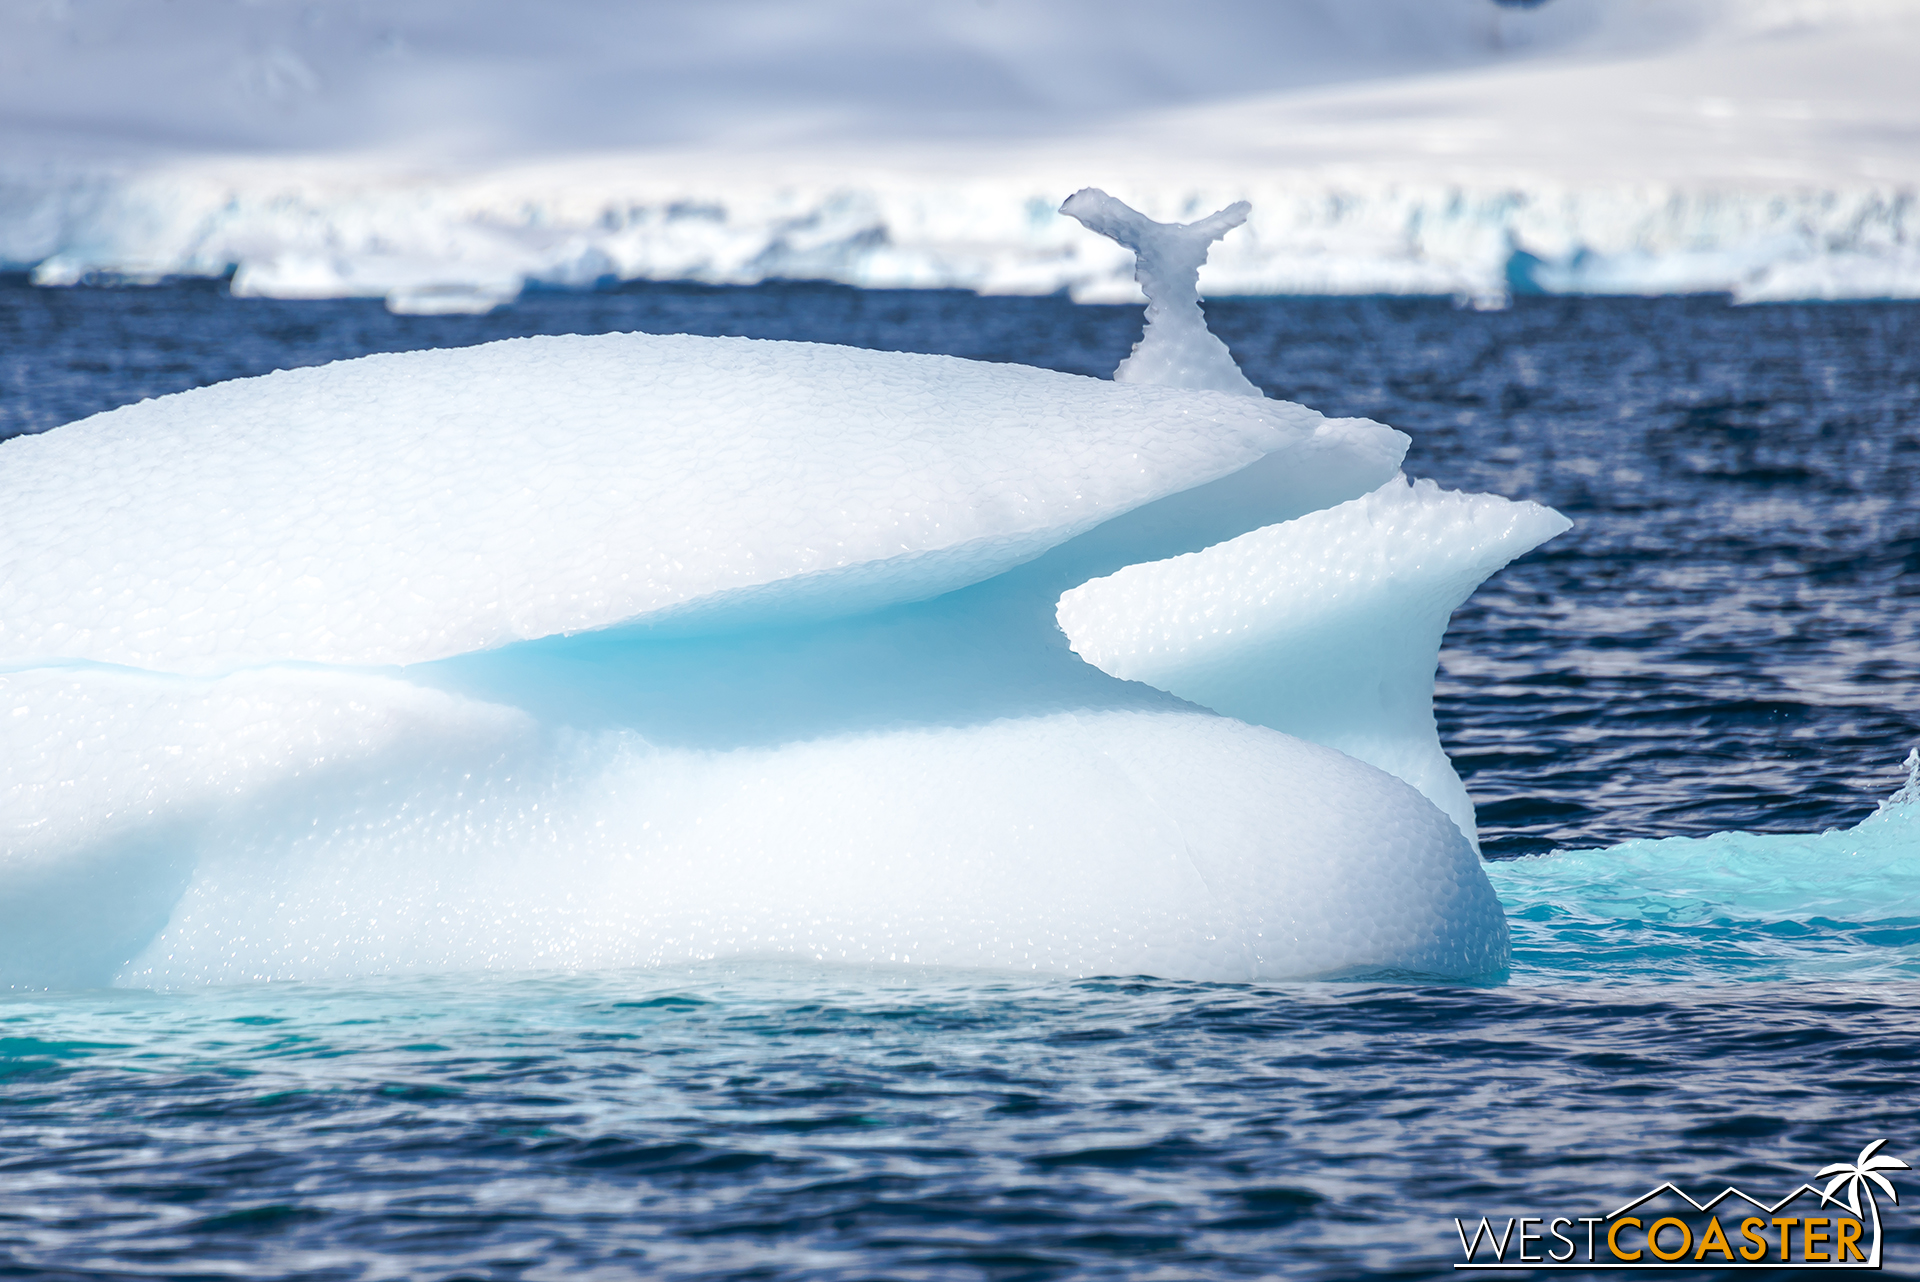 Nature has a sense of humor, so in addition to real whales, there are icy versions. Or at least an iceberg that looks like it has a small whale's tail on top.